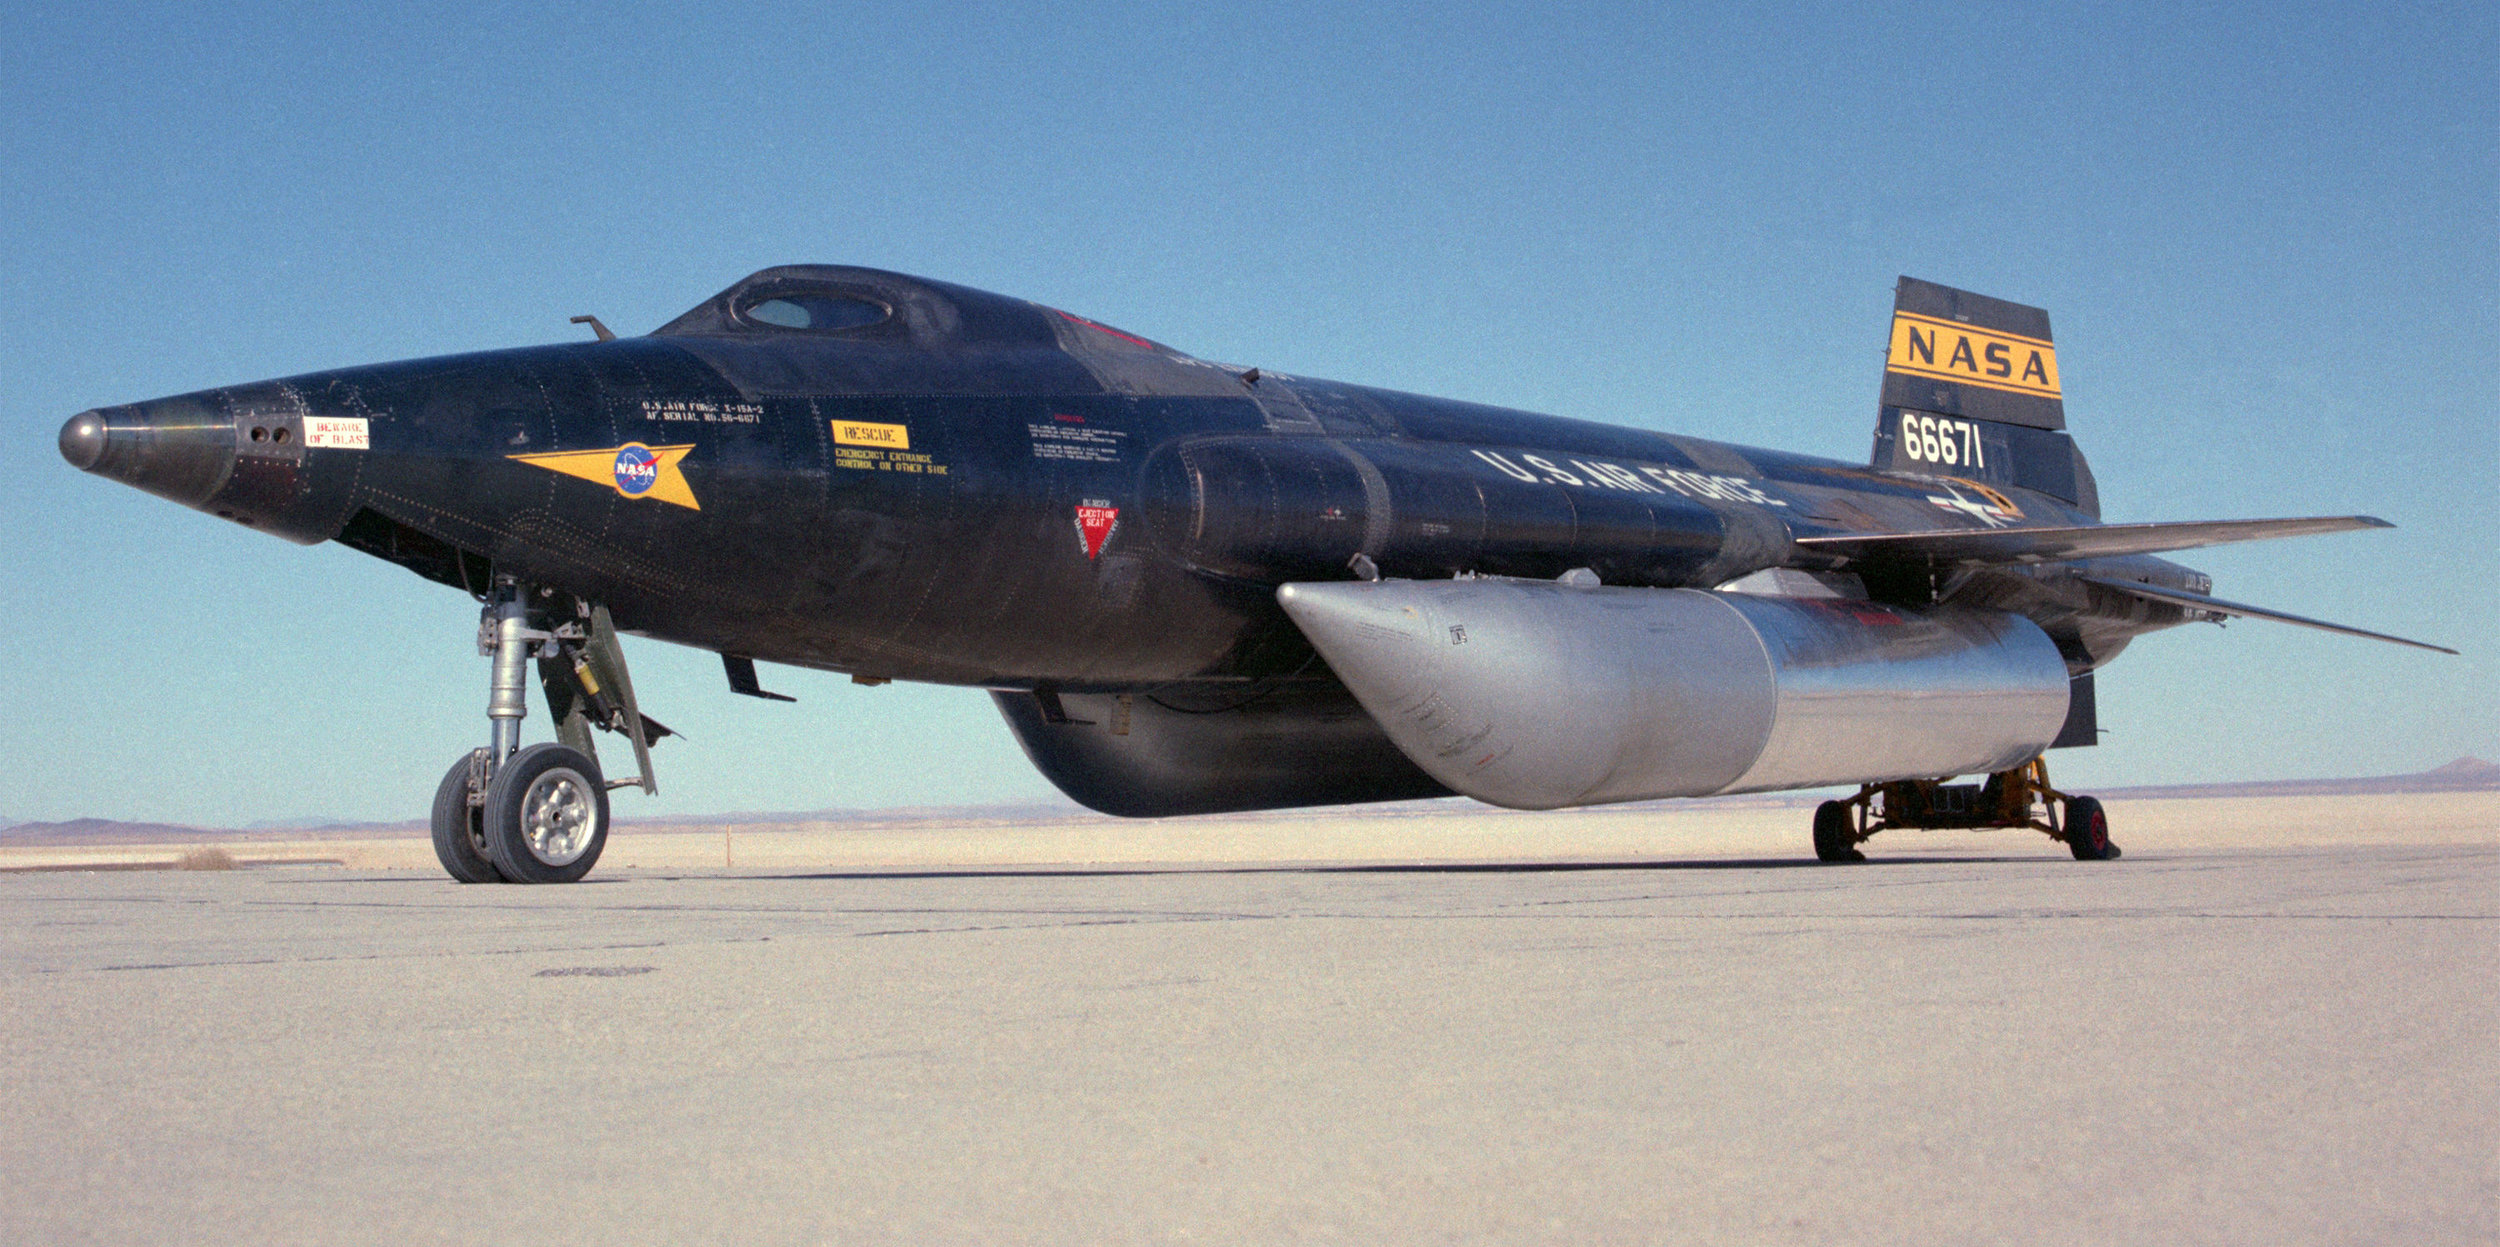 Above- The second X-15 rocket plane (56-6671) is shown with two external fuel tanks which were added during its conversion to the X-15-A-2 configuration in the mid-1960's. (NASA)